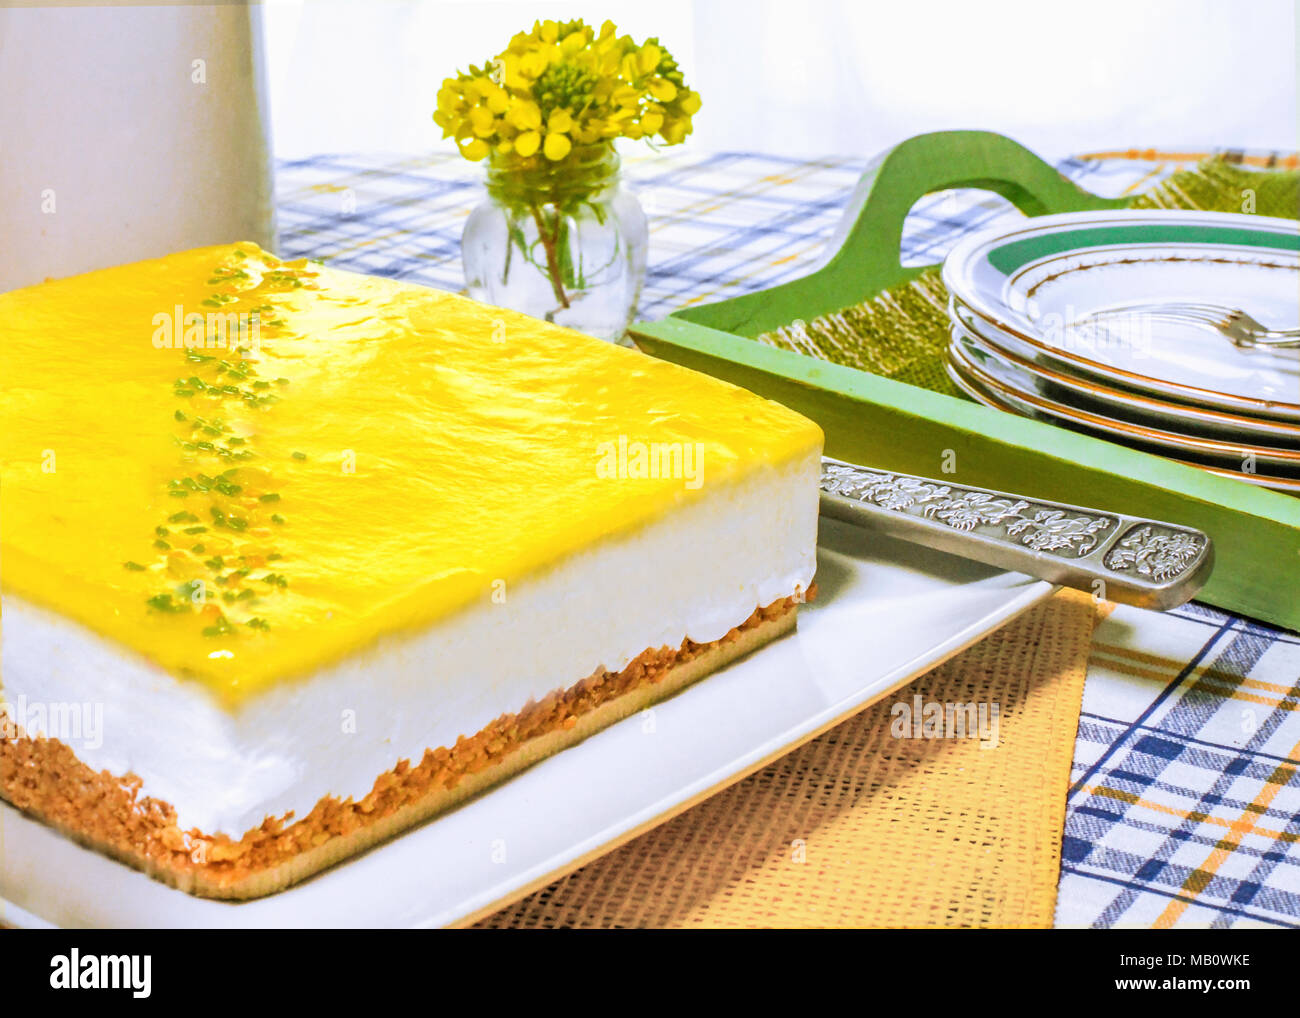 Whole fresh lemon mousse cheesecake in a summer kitchen setting on a table with plates and forks  copy space in the background, - Stock Image